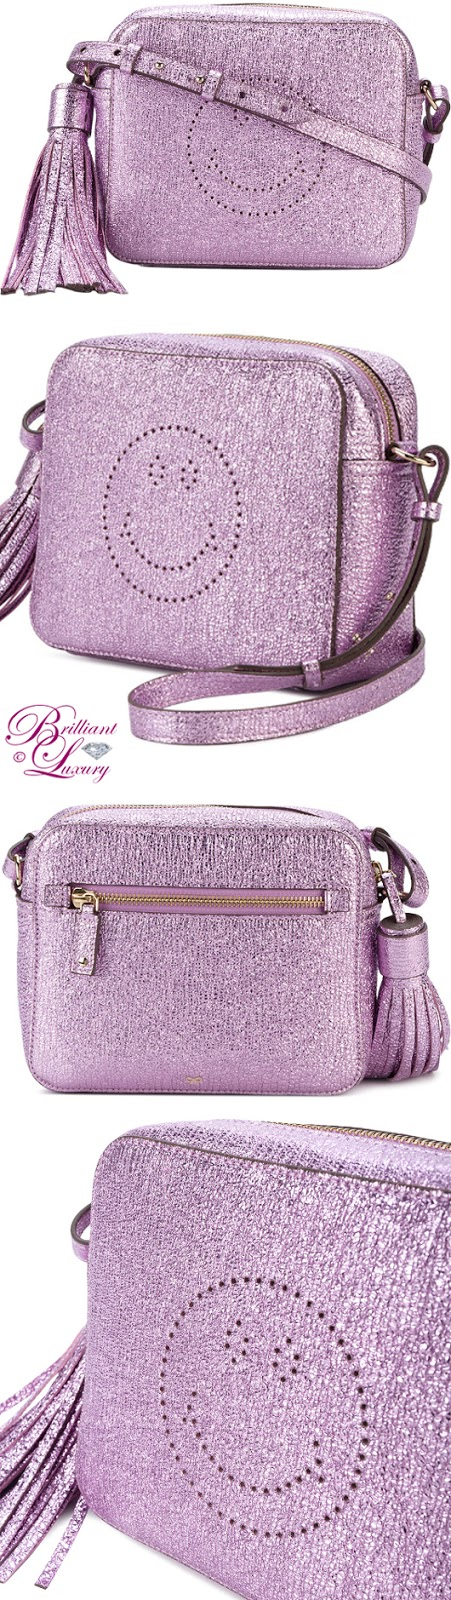 Brilliant Luxury ♦ Anya Hindmarch Metallic Purple Smiley Crossbody Bag